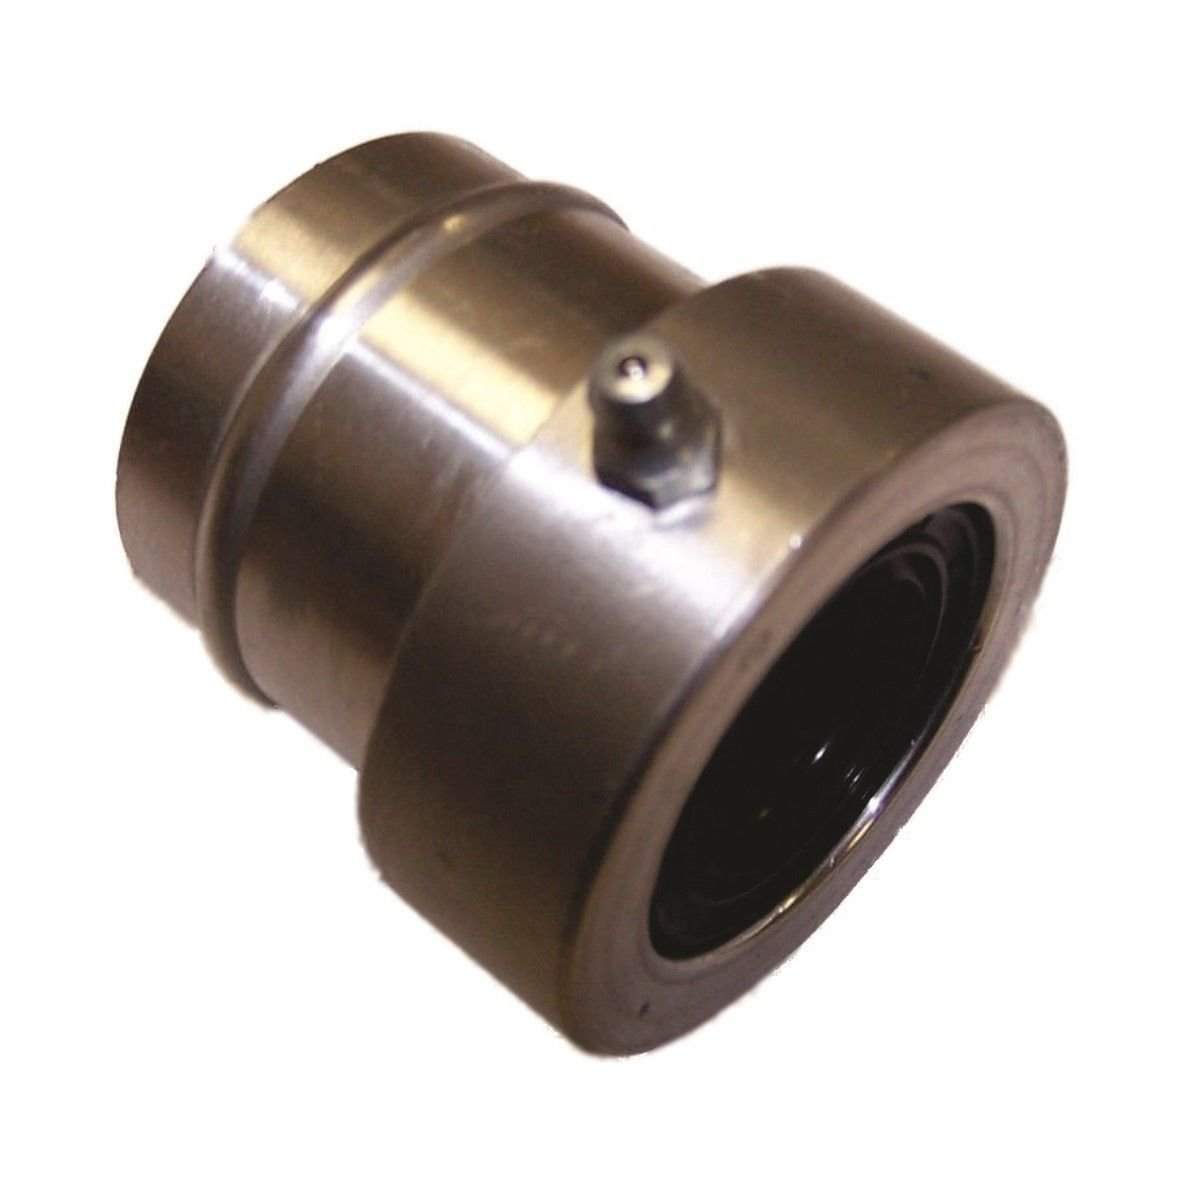 SEADOO SEAL CARRIER ASSEMBLY WITH BEARING 272000024 FITS SEA-DOO 92-93 GTX 93-95 SPI 1993 SPX 91-92 XP 580CC JSP Manufacturing FBA_DT-B-272000024-FBA